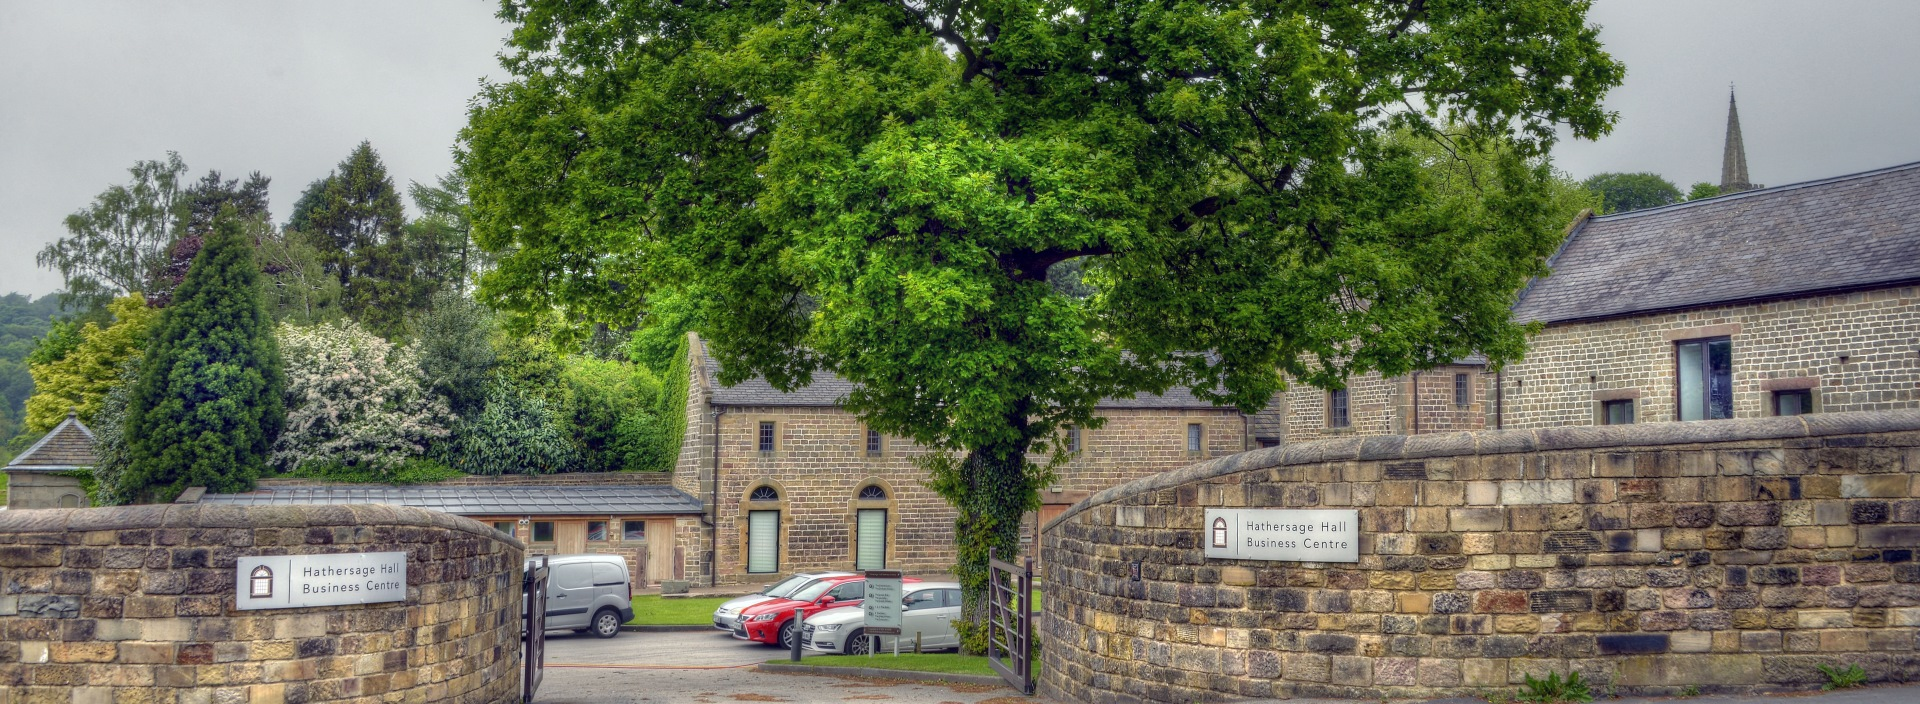 peaceful creative office space. Commercial Property Hub, In The Heart Of Peak District, Offering Flexible Office Space And A Peaceful Creative Environment For Growing